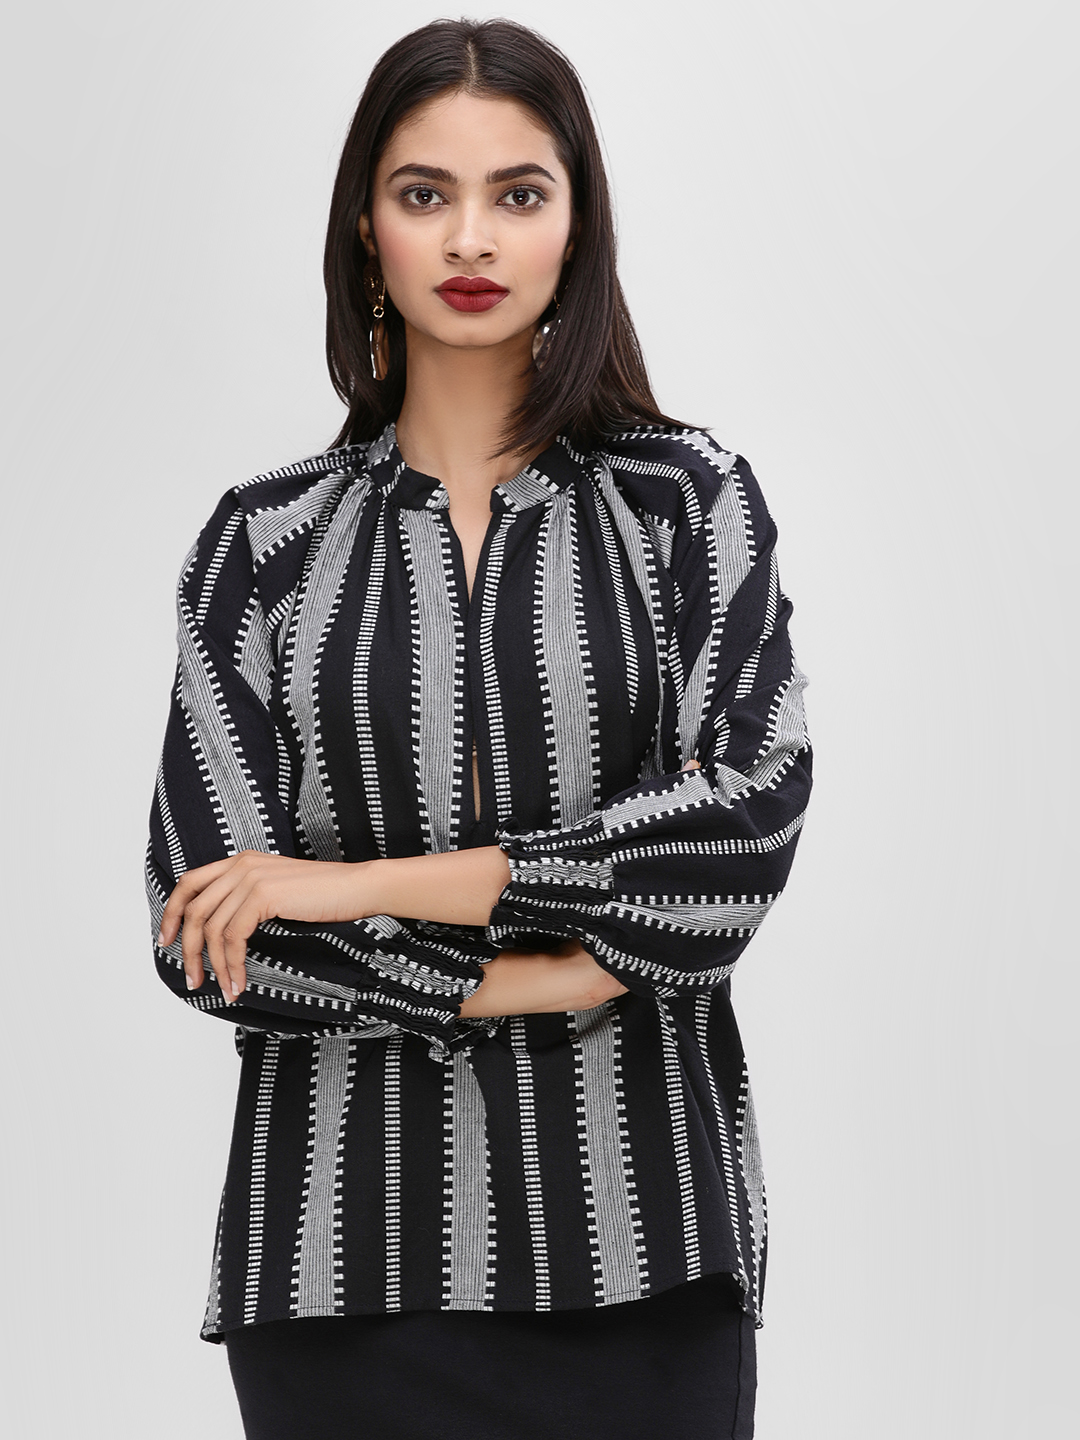 KOOVS Black Printed Cuffed Sleeve Blouse 1